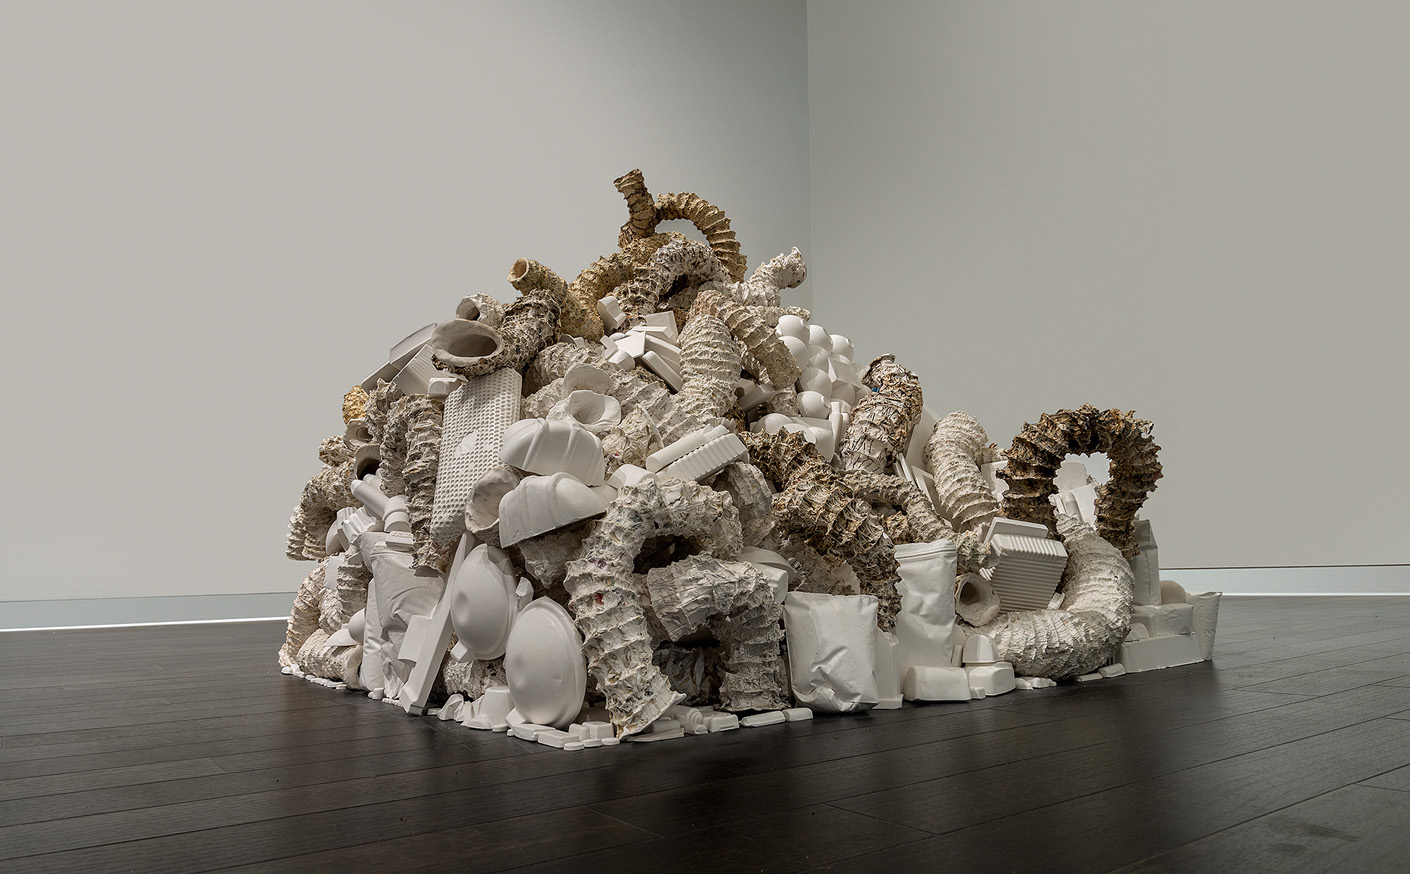 """Seemingly Unconnected Events Cubed (V5)  2007- 2014 (ongoing)  Hundreds of plaster casts of organic forms interwoven and interconnected with consumer goods casts, 4 x 4 x 40"""" highest point  Installation at Epsten Gallery, Village Shalom, metropolitan Kansas City, MO, 2014   Photo: E.G. Schempf"""